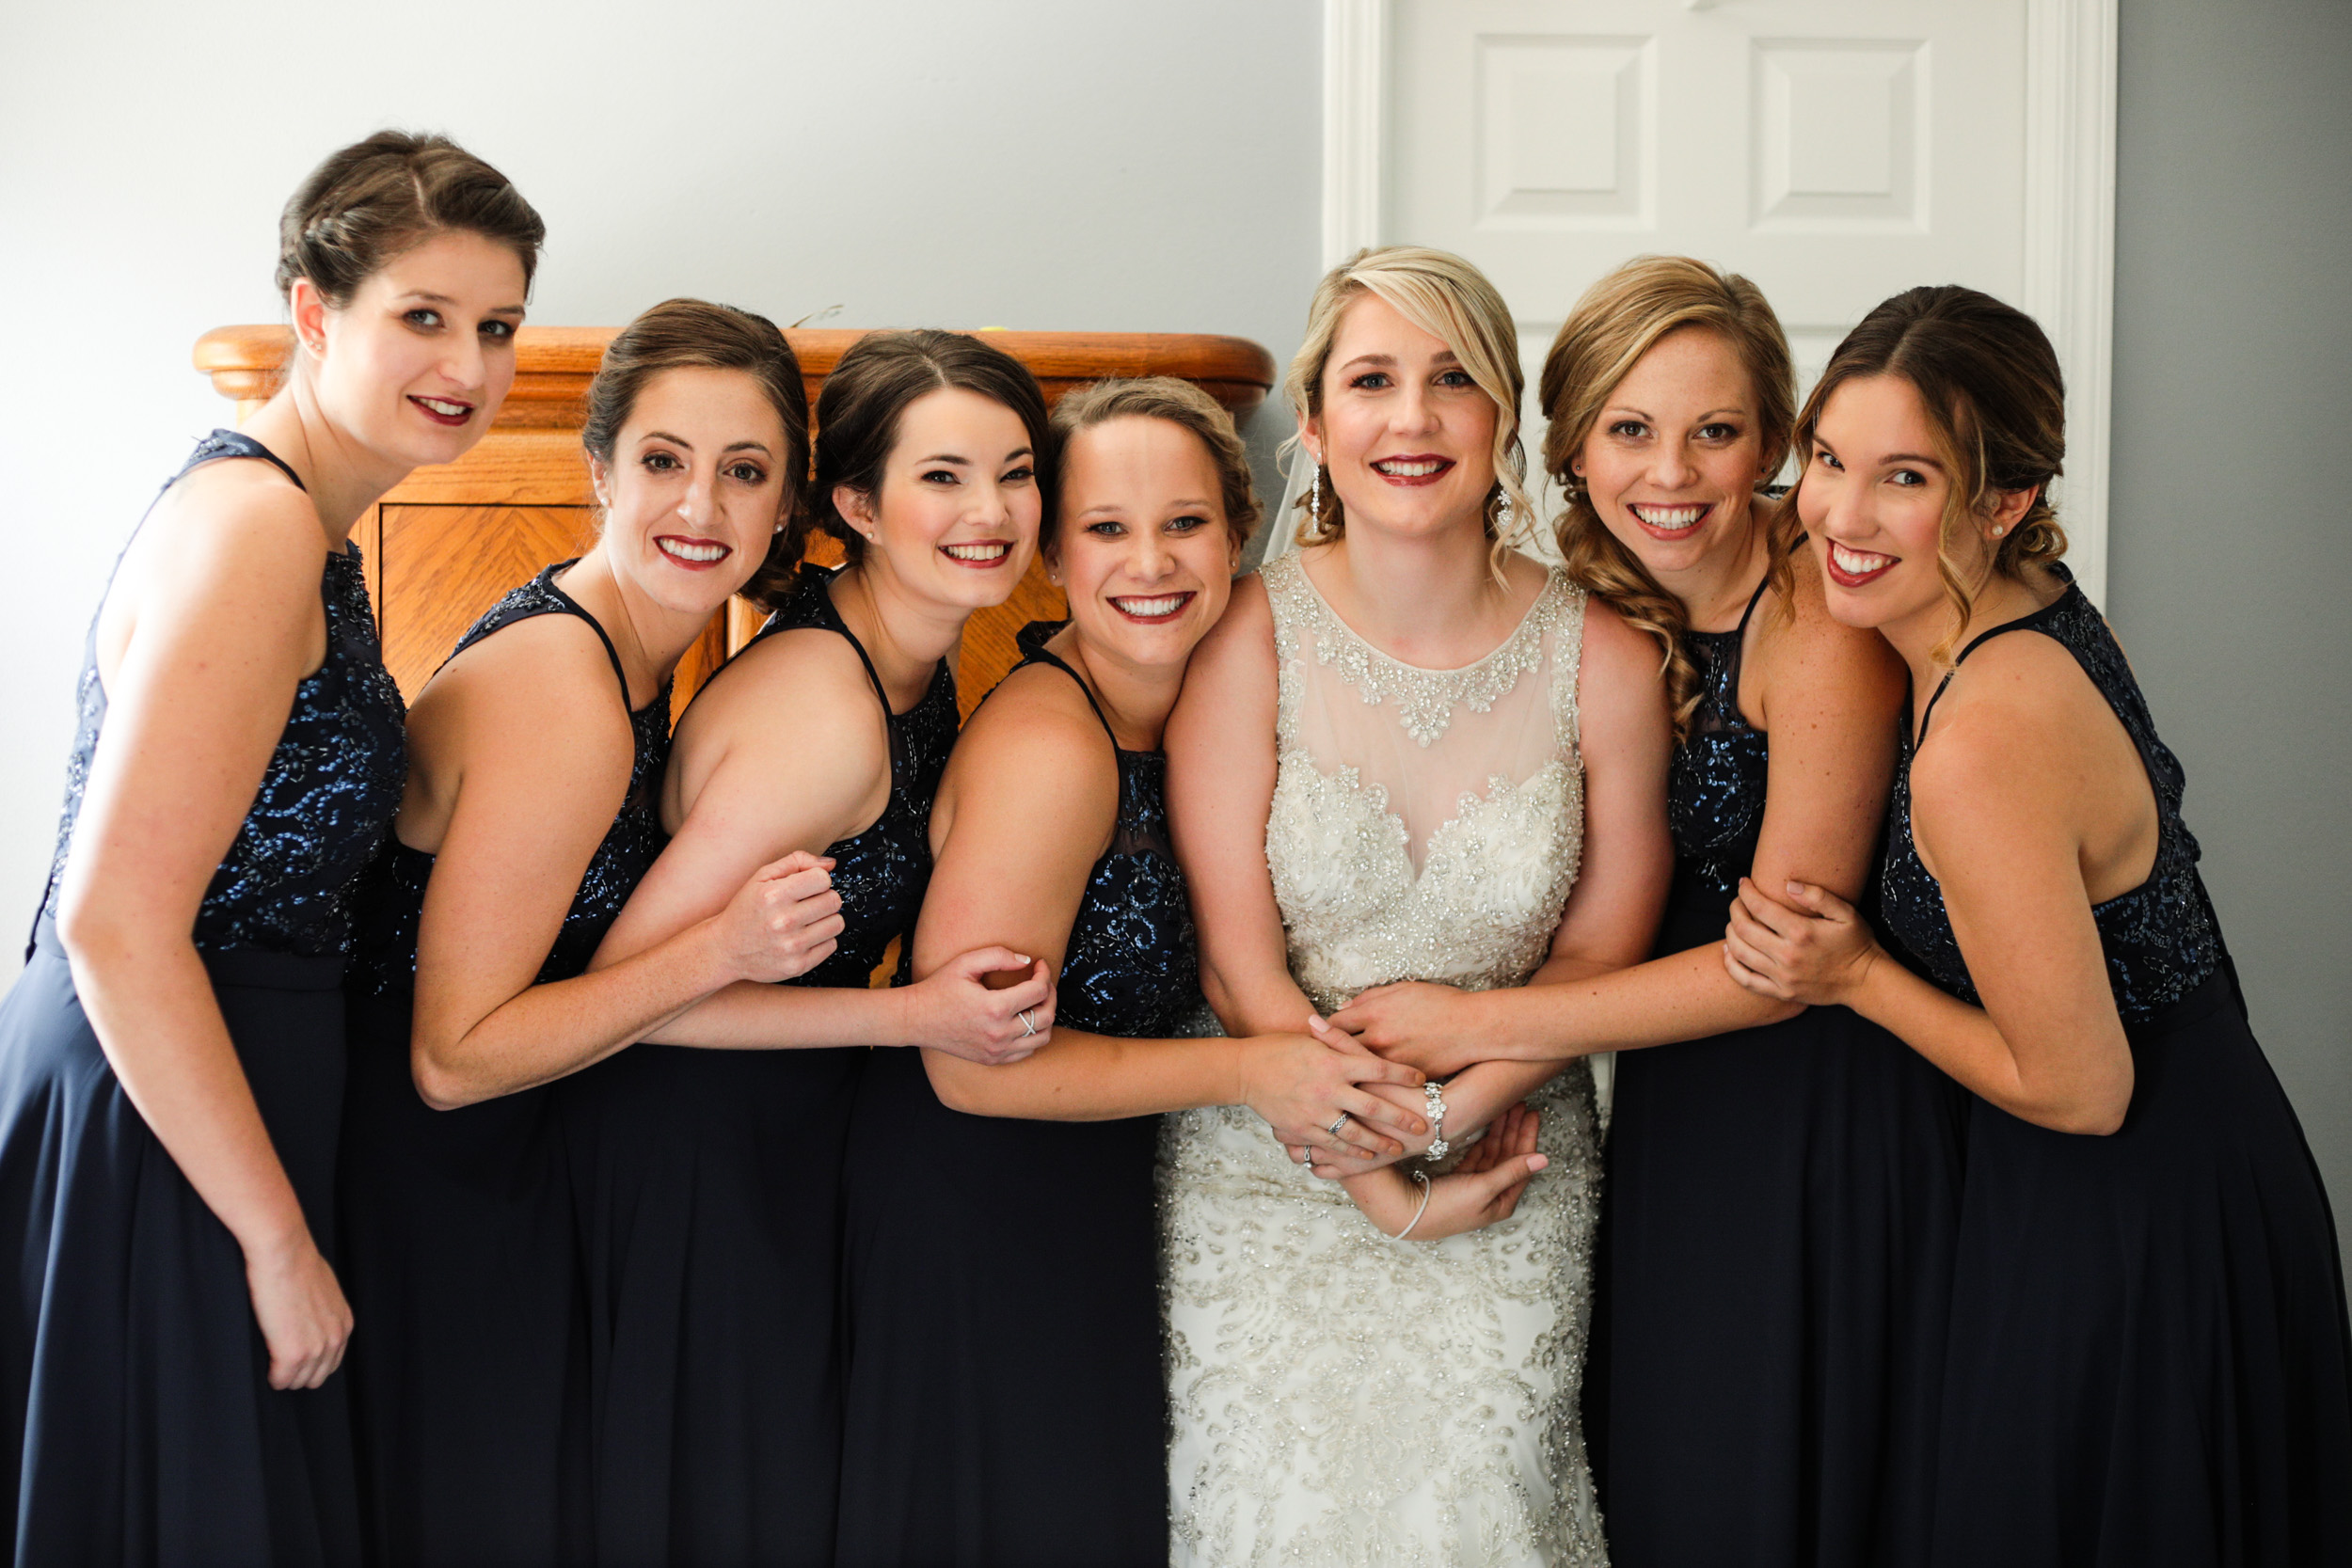 Winstanley Baptist Church Wedding and Four Points by Sheraton Reception Photos by St Louis Wedding Photographers and Videographers Oldani Photography 43.jpg